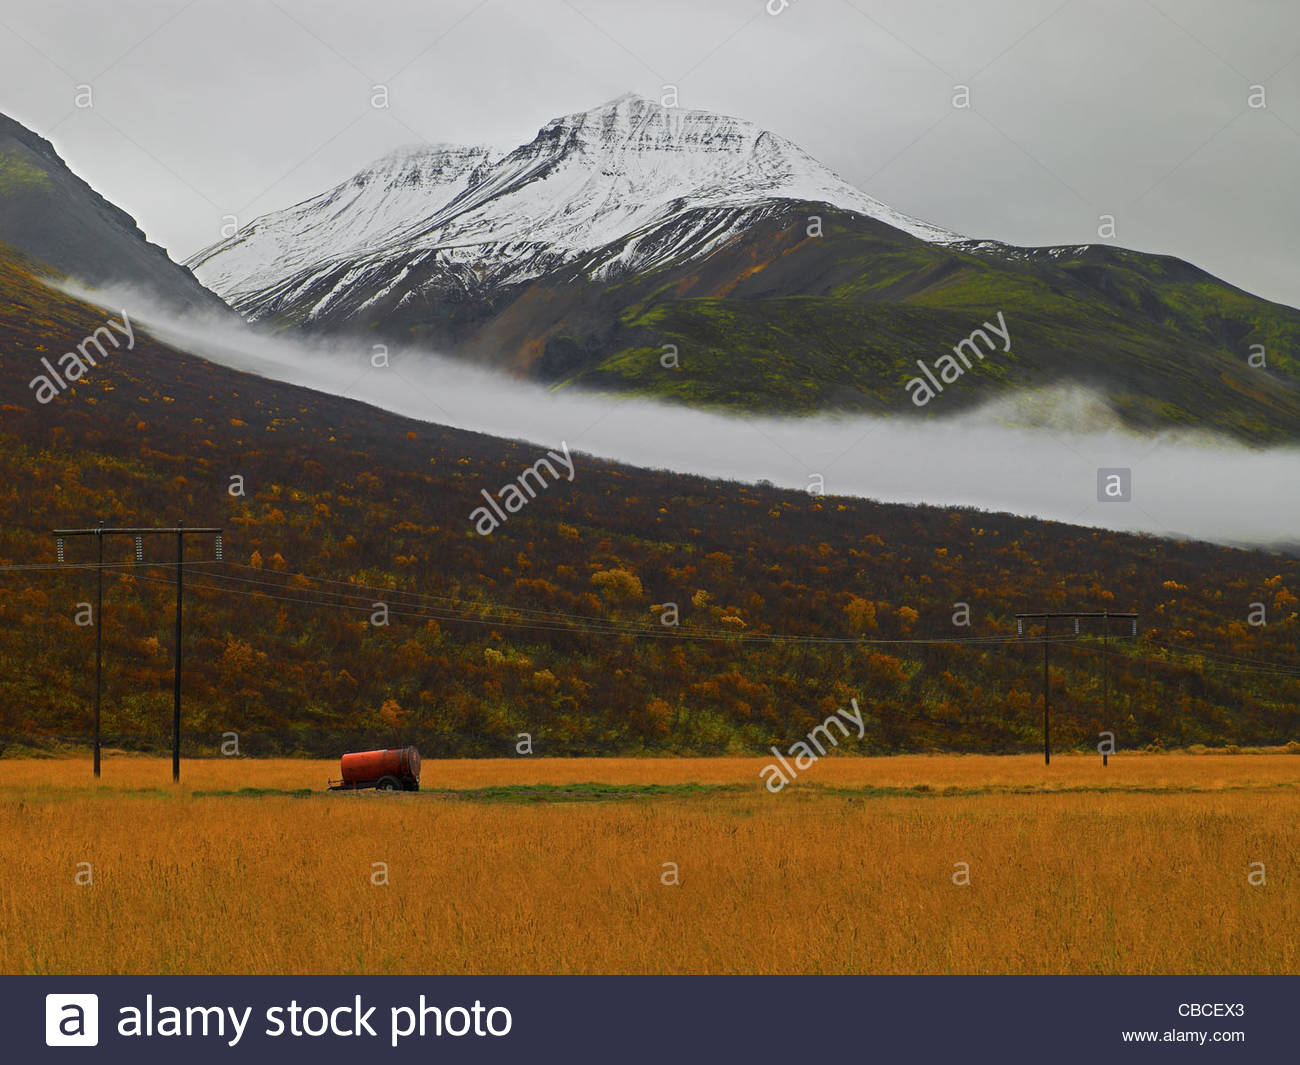 Tractor in hayfield beside mountains - Stock Image